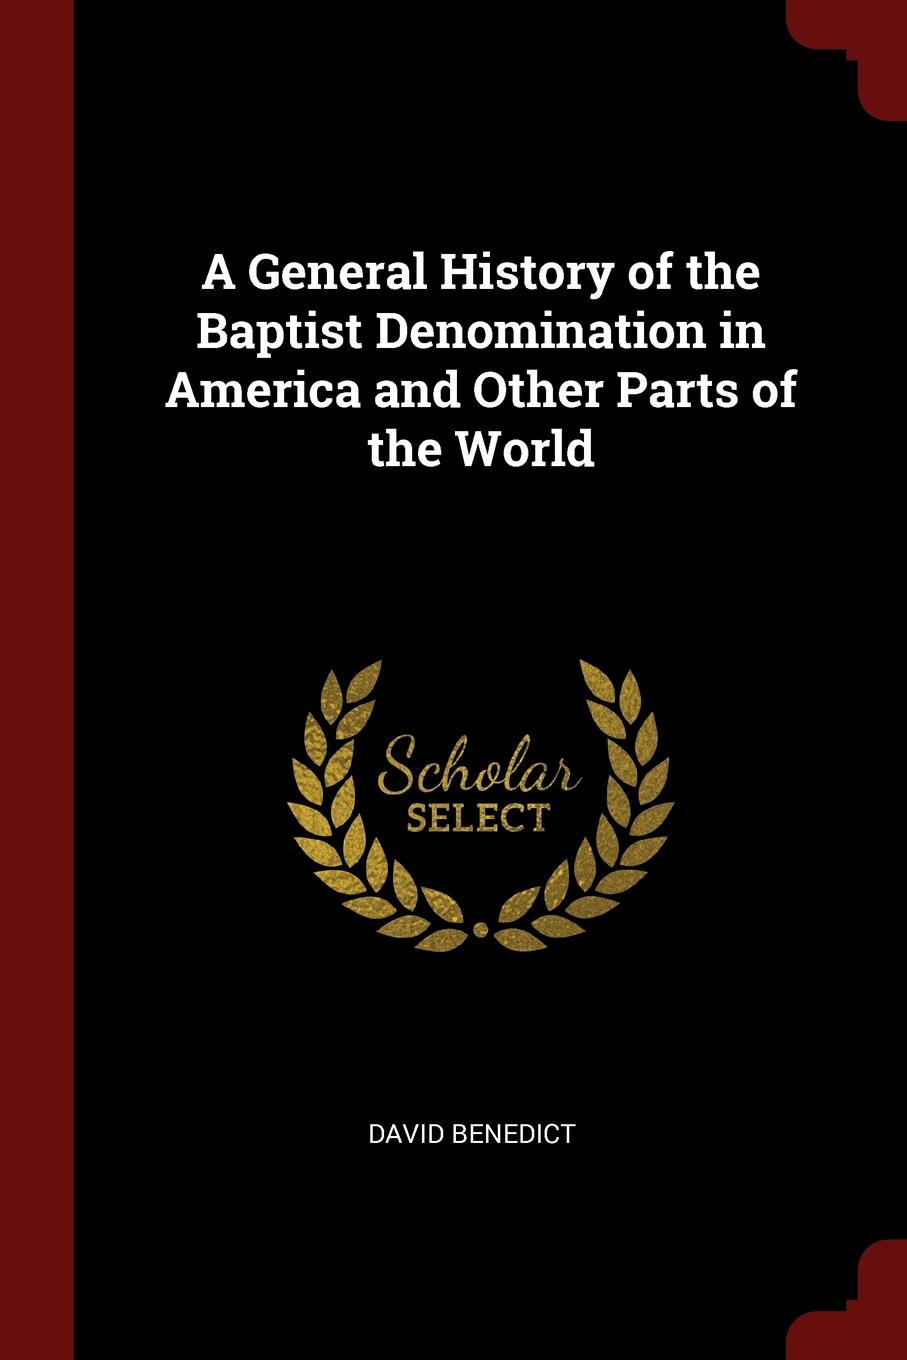 David Benedict A General History of the Baptist Denomination in America and Other Parts World